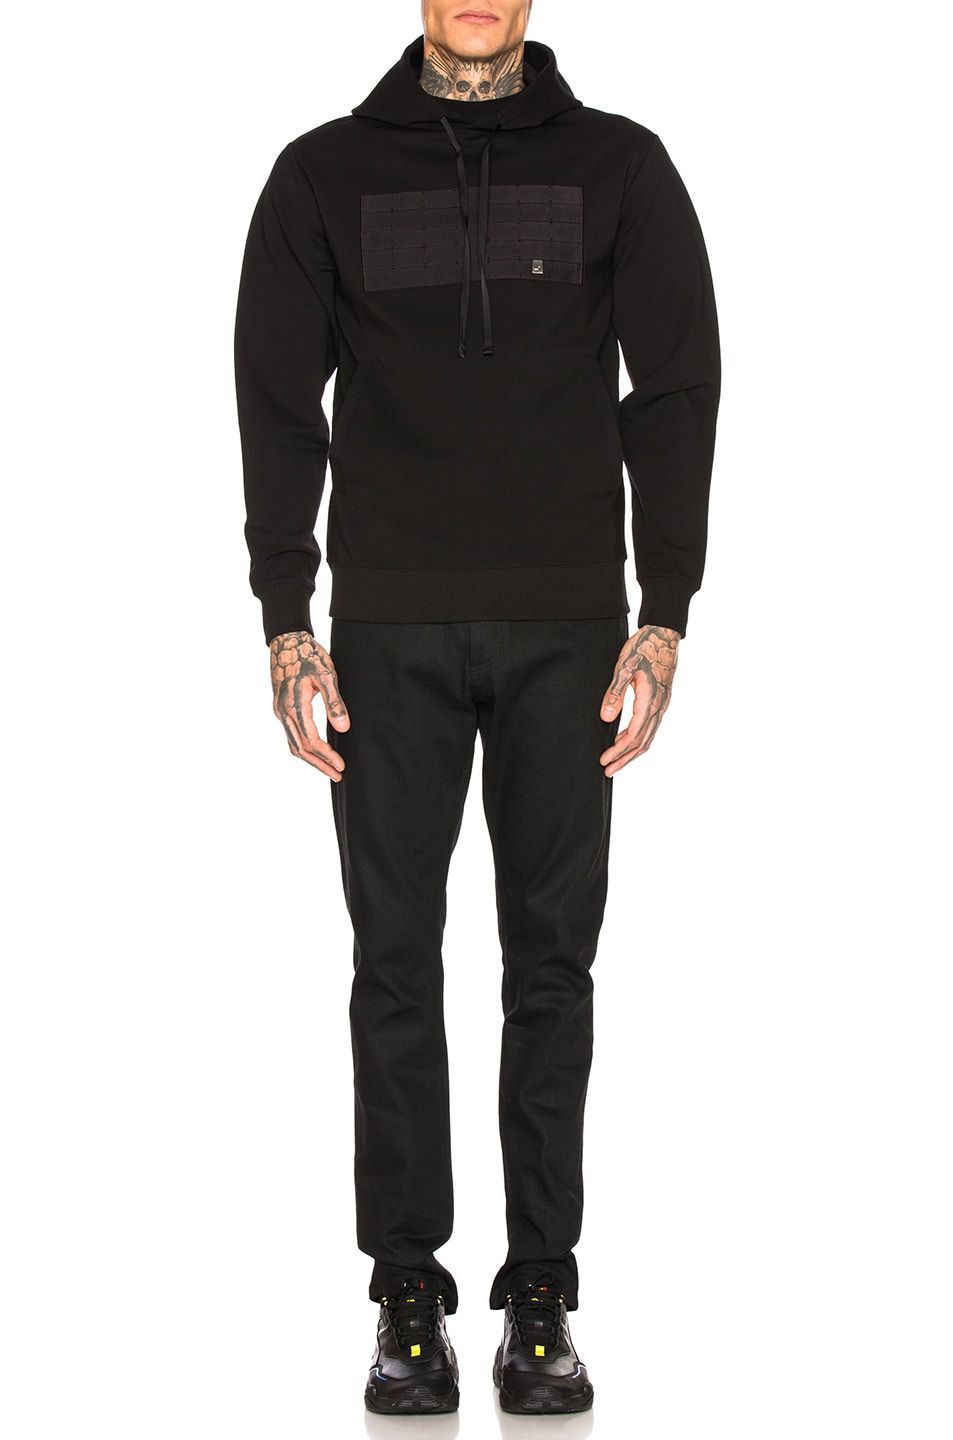 outlet 1017 ALYX 9SM Military Strap Hoodie Black